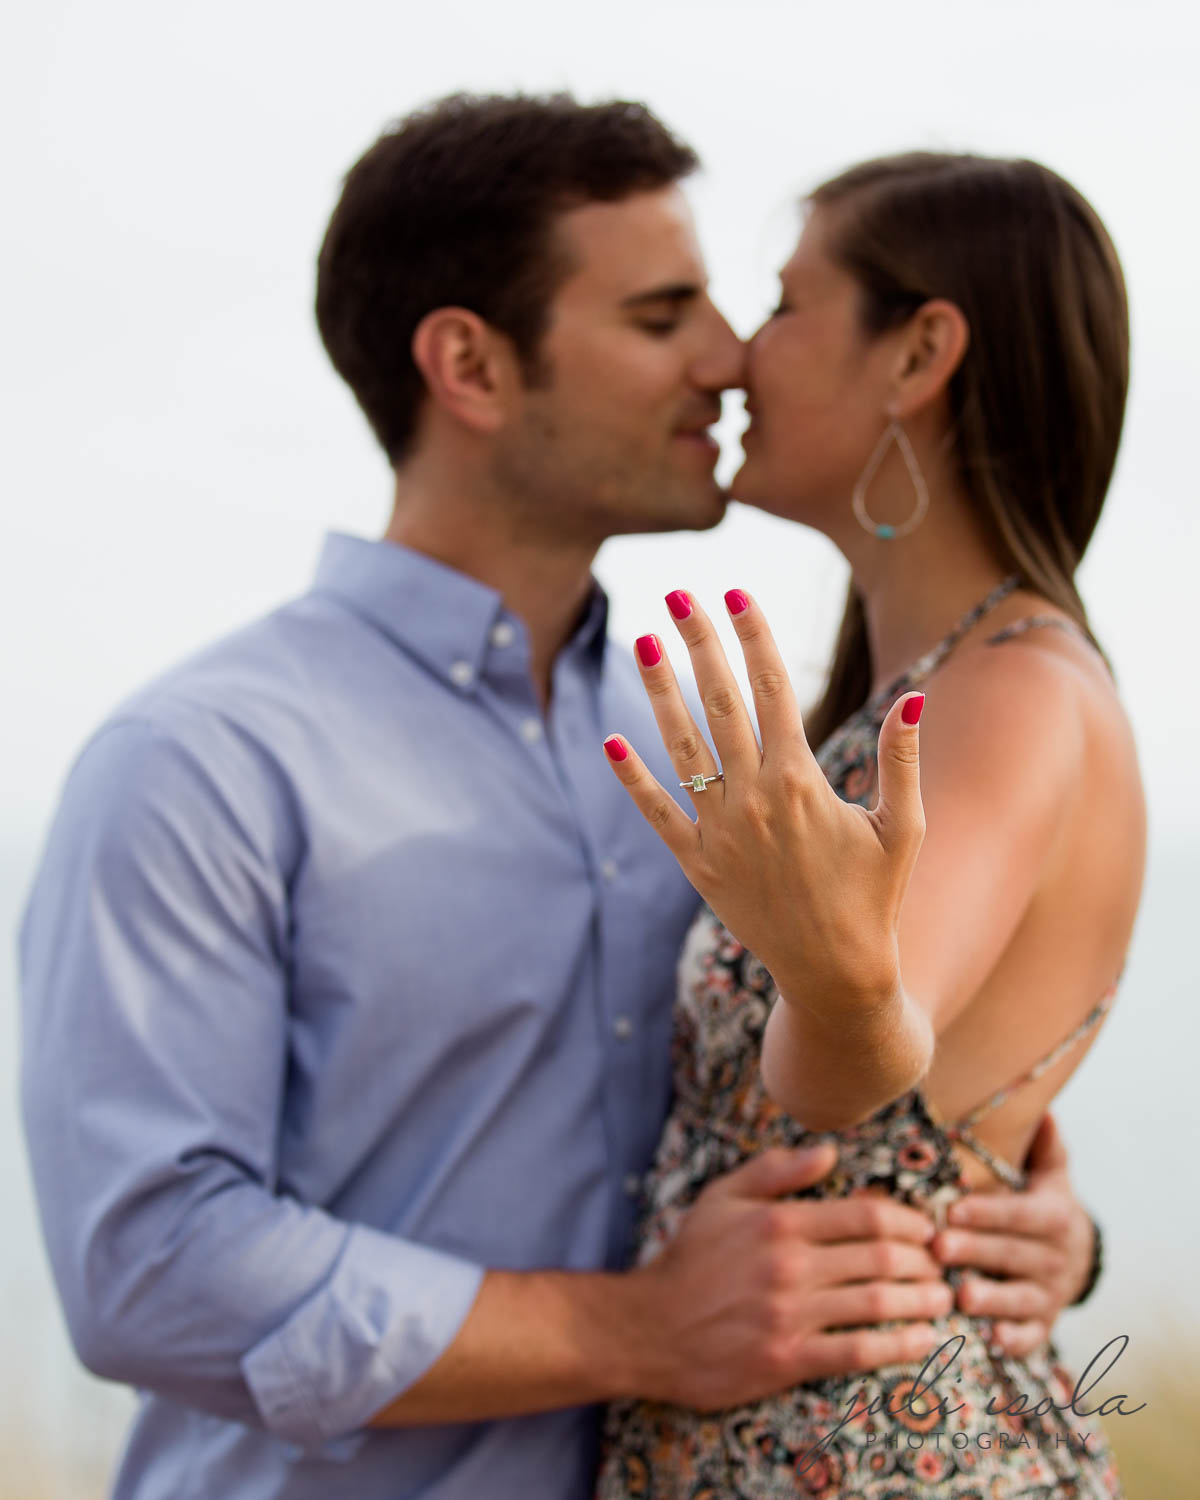 surprise_proposal_san_clemente_photographer (8 of 19).jpg